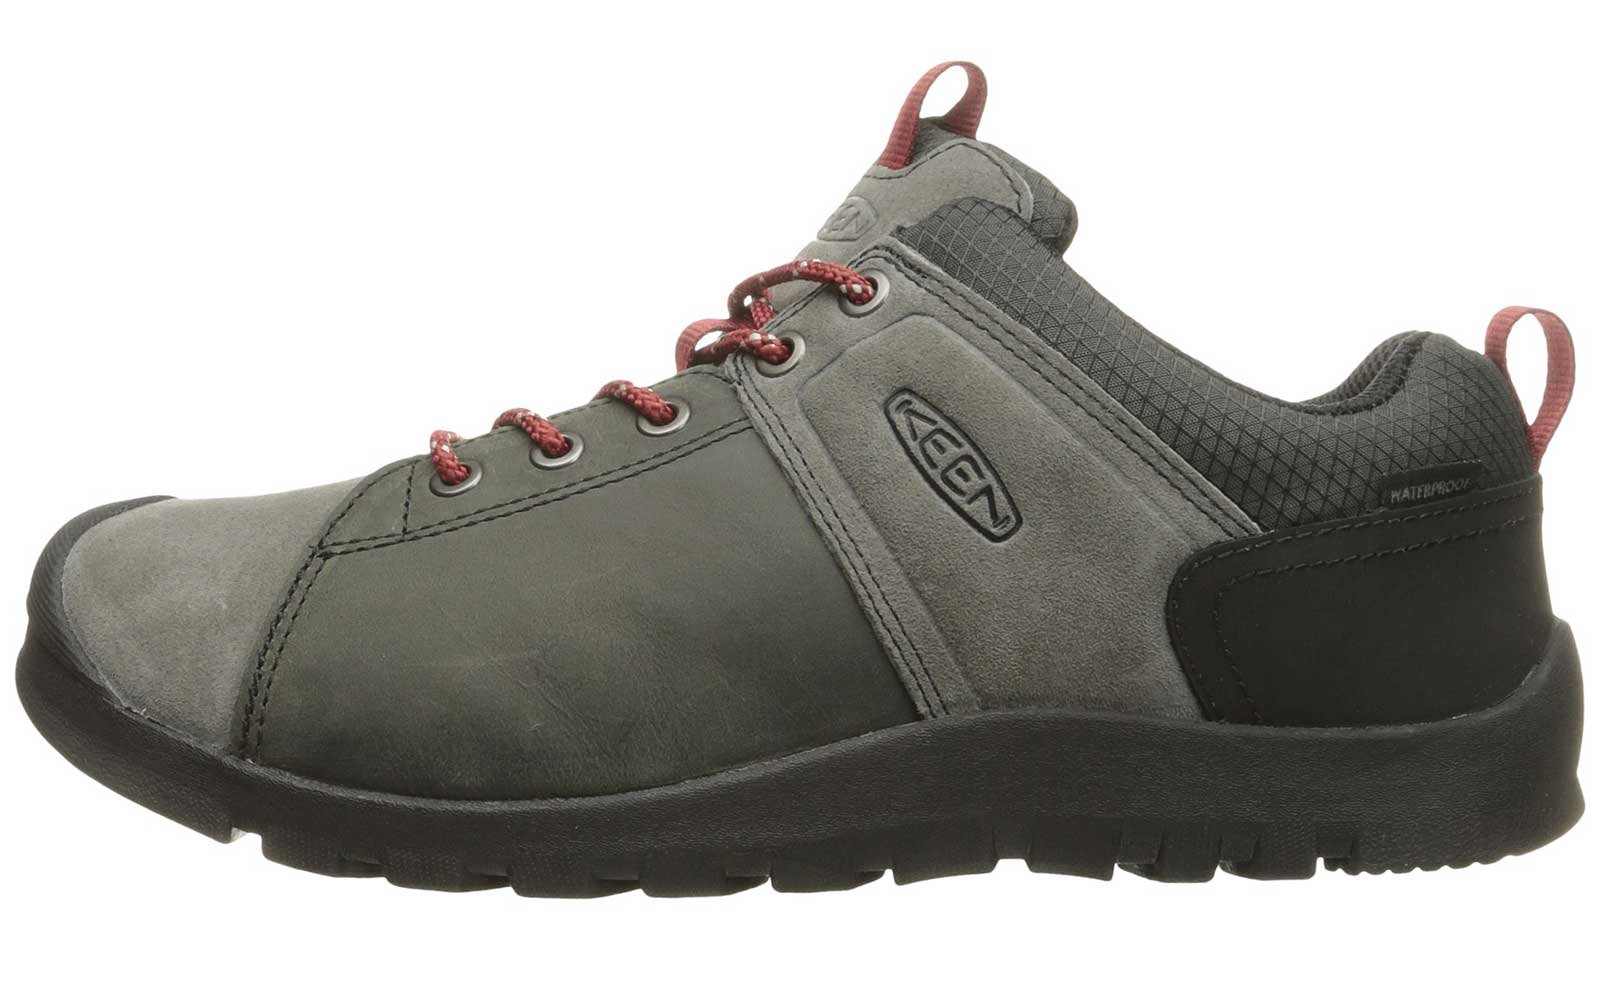 Keen Waterproof Sneakers